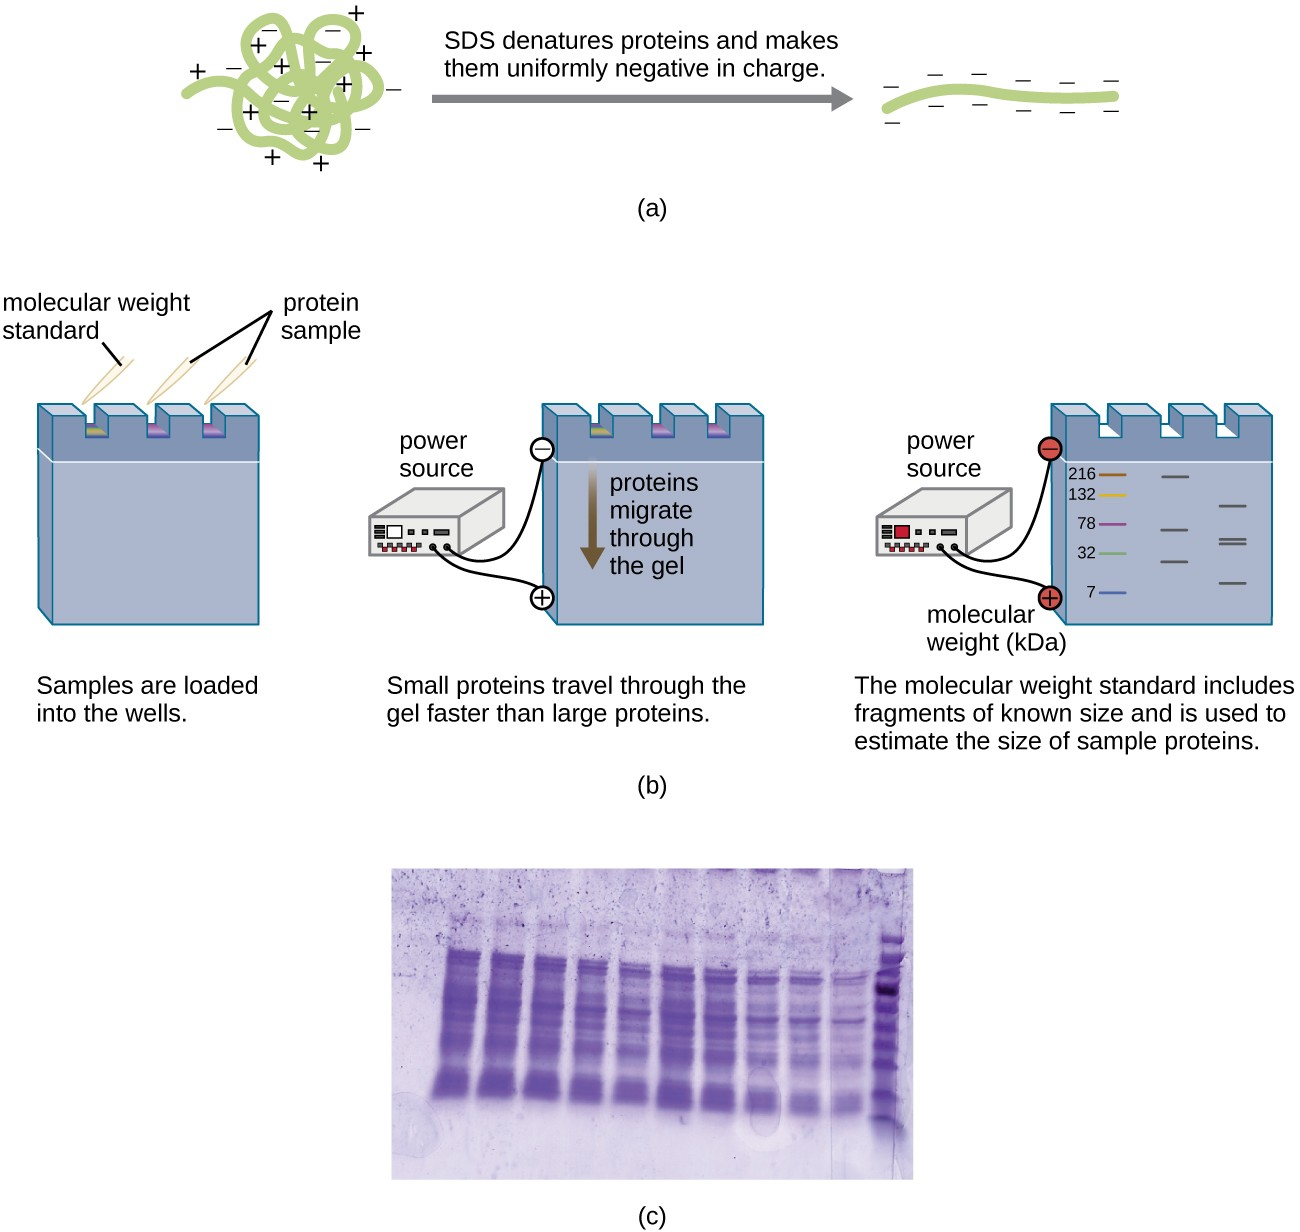 a) A diagram showing a globular protein with positive and negative charges undergoing SDS treatment. SDS denatures the protein (producing a linear product) and makes them uniformly negative in charge. B) The protein samples are then placed into the wells of an SDS_PAGE gel. One well is loaded with a molecular weight standard. The gel is then exposed to a power source that results in the top of the gel (near the wells) becoming negative charged and the bottom becoming positively charged. Proteins migrate through the gel from the negative to the positive sides. Small proteins travel through the gel faster than large proteins. The molecular weight standard includes fragments of known size and is used to estimate the size of sample proteins. In this example the standard has sizes of 216, 132, 78, 32 and 7. The other lanes have bands of various sizes. C) A photograph of an SDS-PAGE gel. Purple bands on a clear background.